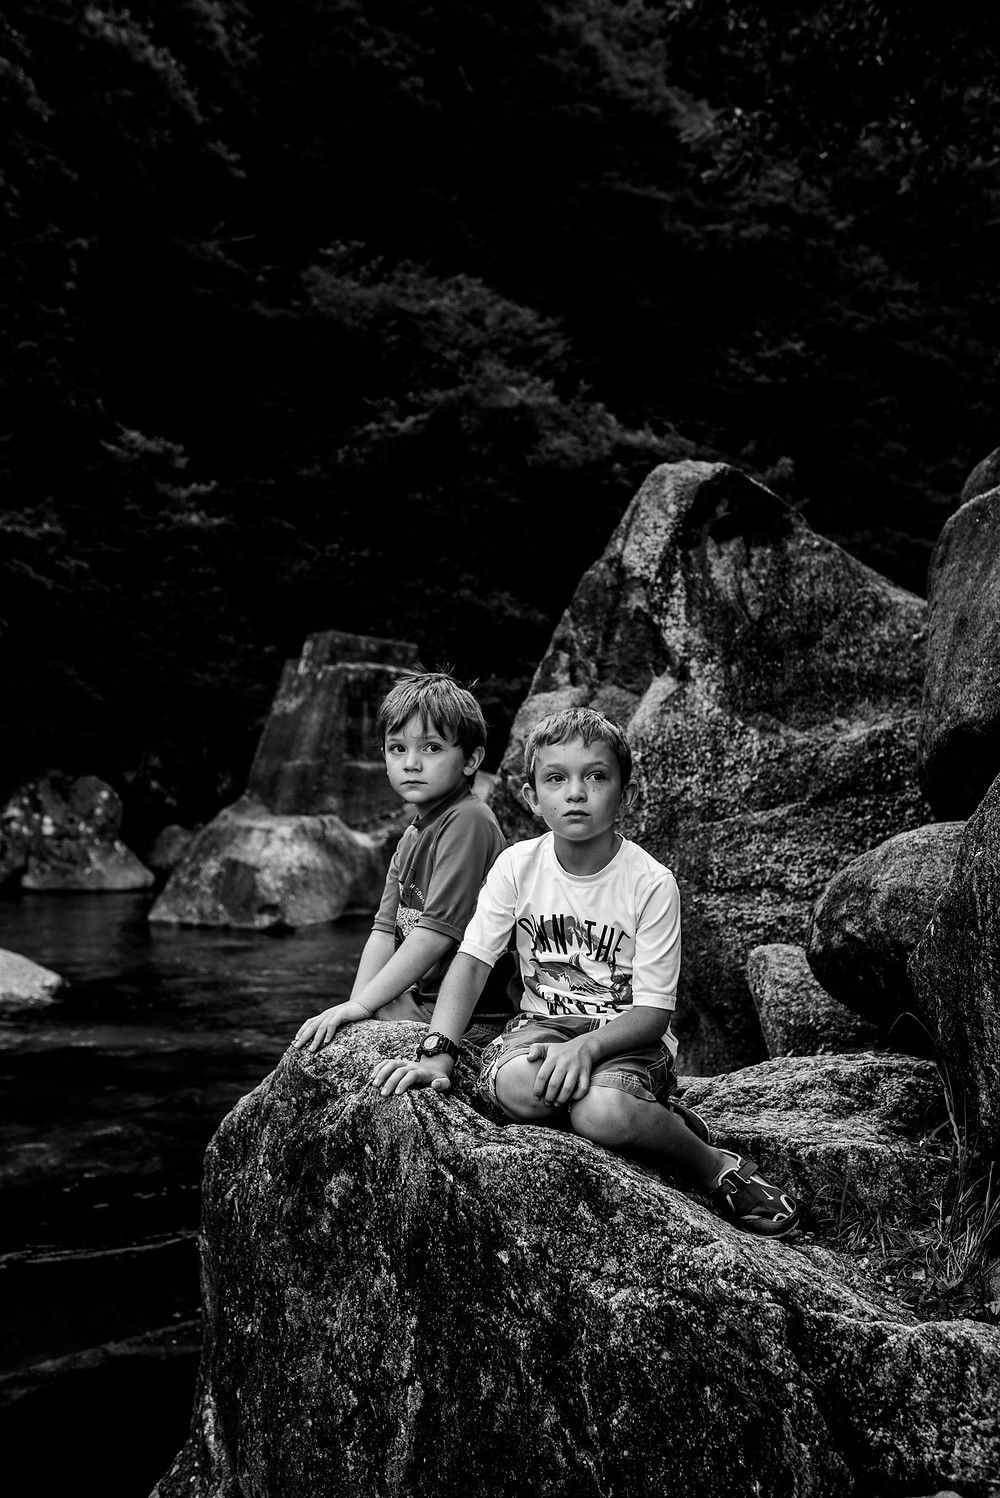 The boys sit on the big rocks by the river